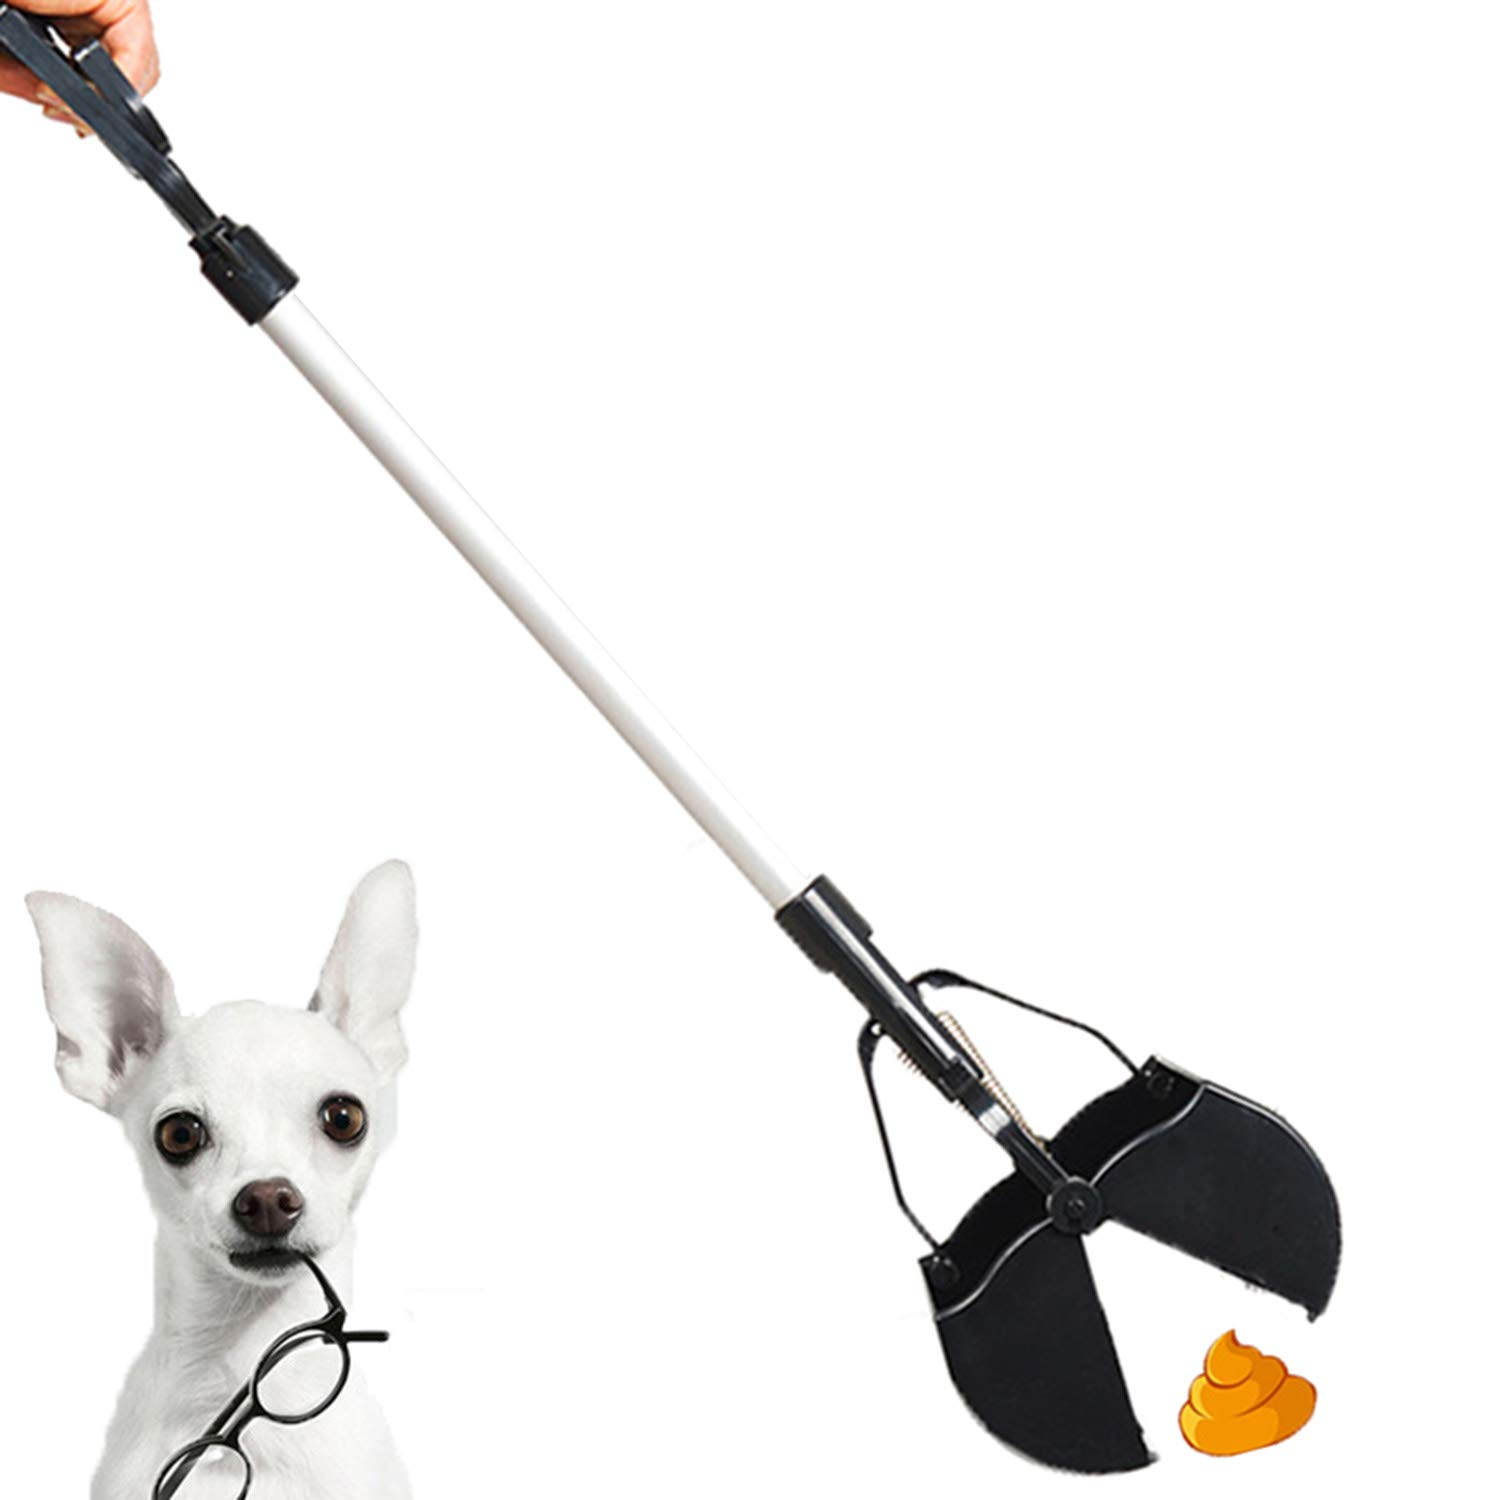 Pet Poop Scooper with Long Aluminum Handle Light Weight Excrement Shovel Dog's Waste Clamp, Garden, Home Using Without Stoop